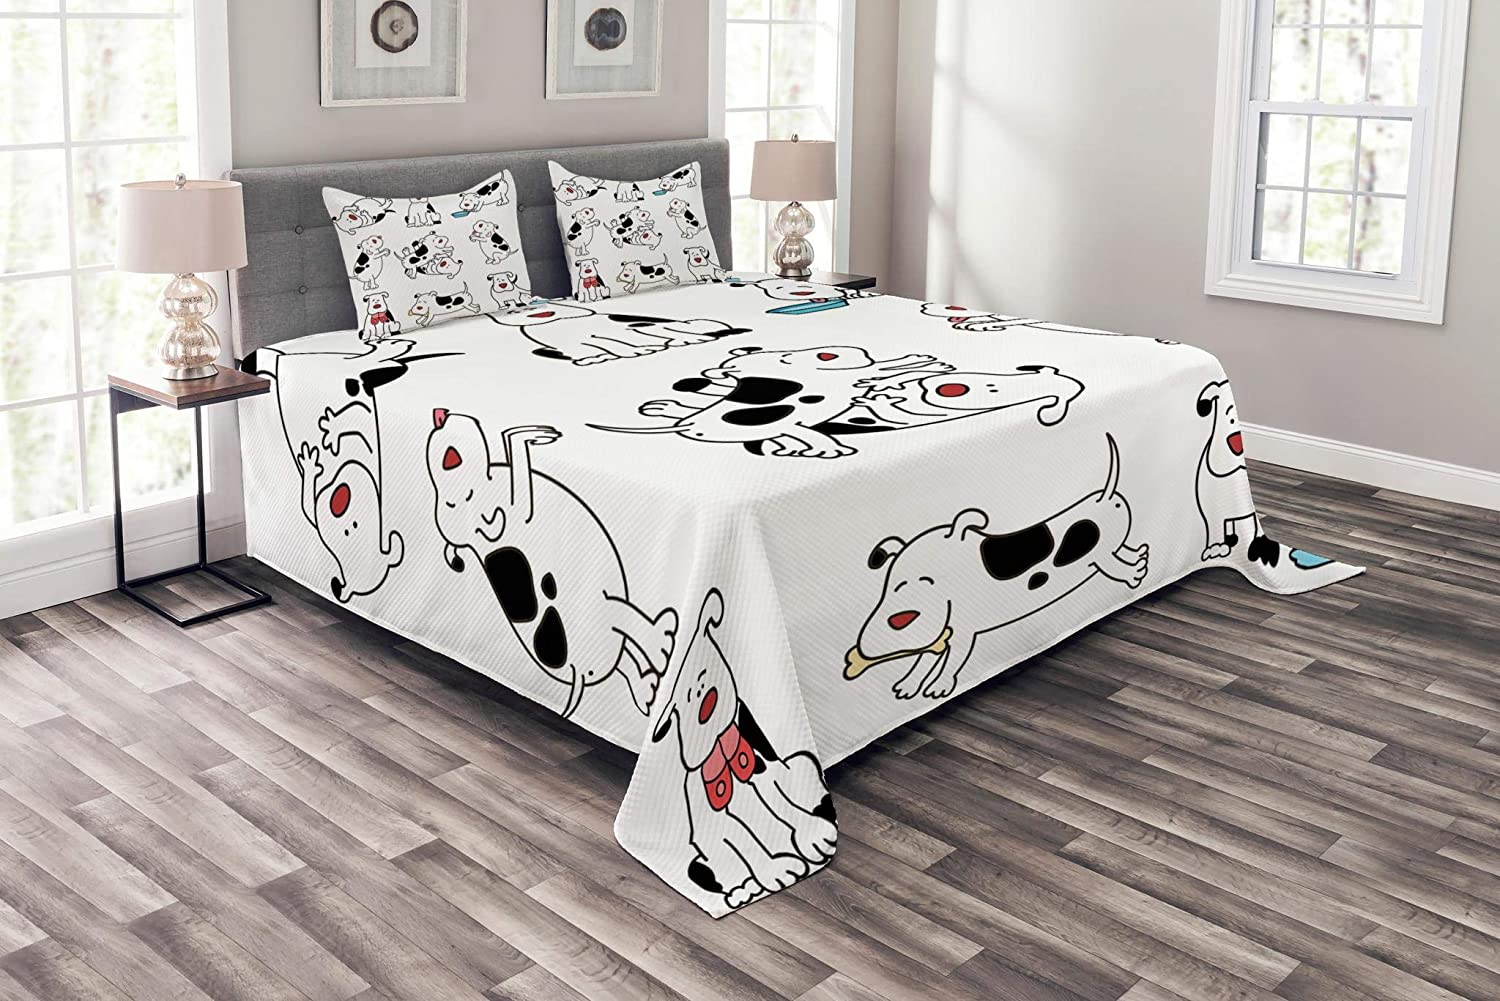 Lunarable Dog Lover Bedspread, Cartoon Dogs Childhood Dachshund Joy Expression Eating Happy Playing Enjoying, Decorative Quilted 3 Piece Coverlet Set with 2 Pillow Shams, Queen Size, Black White